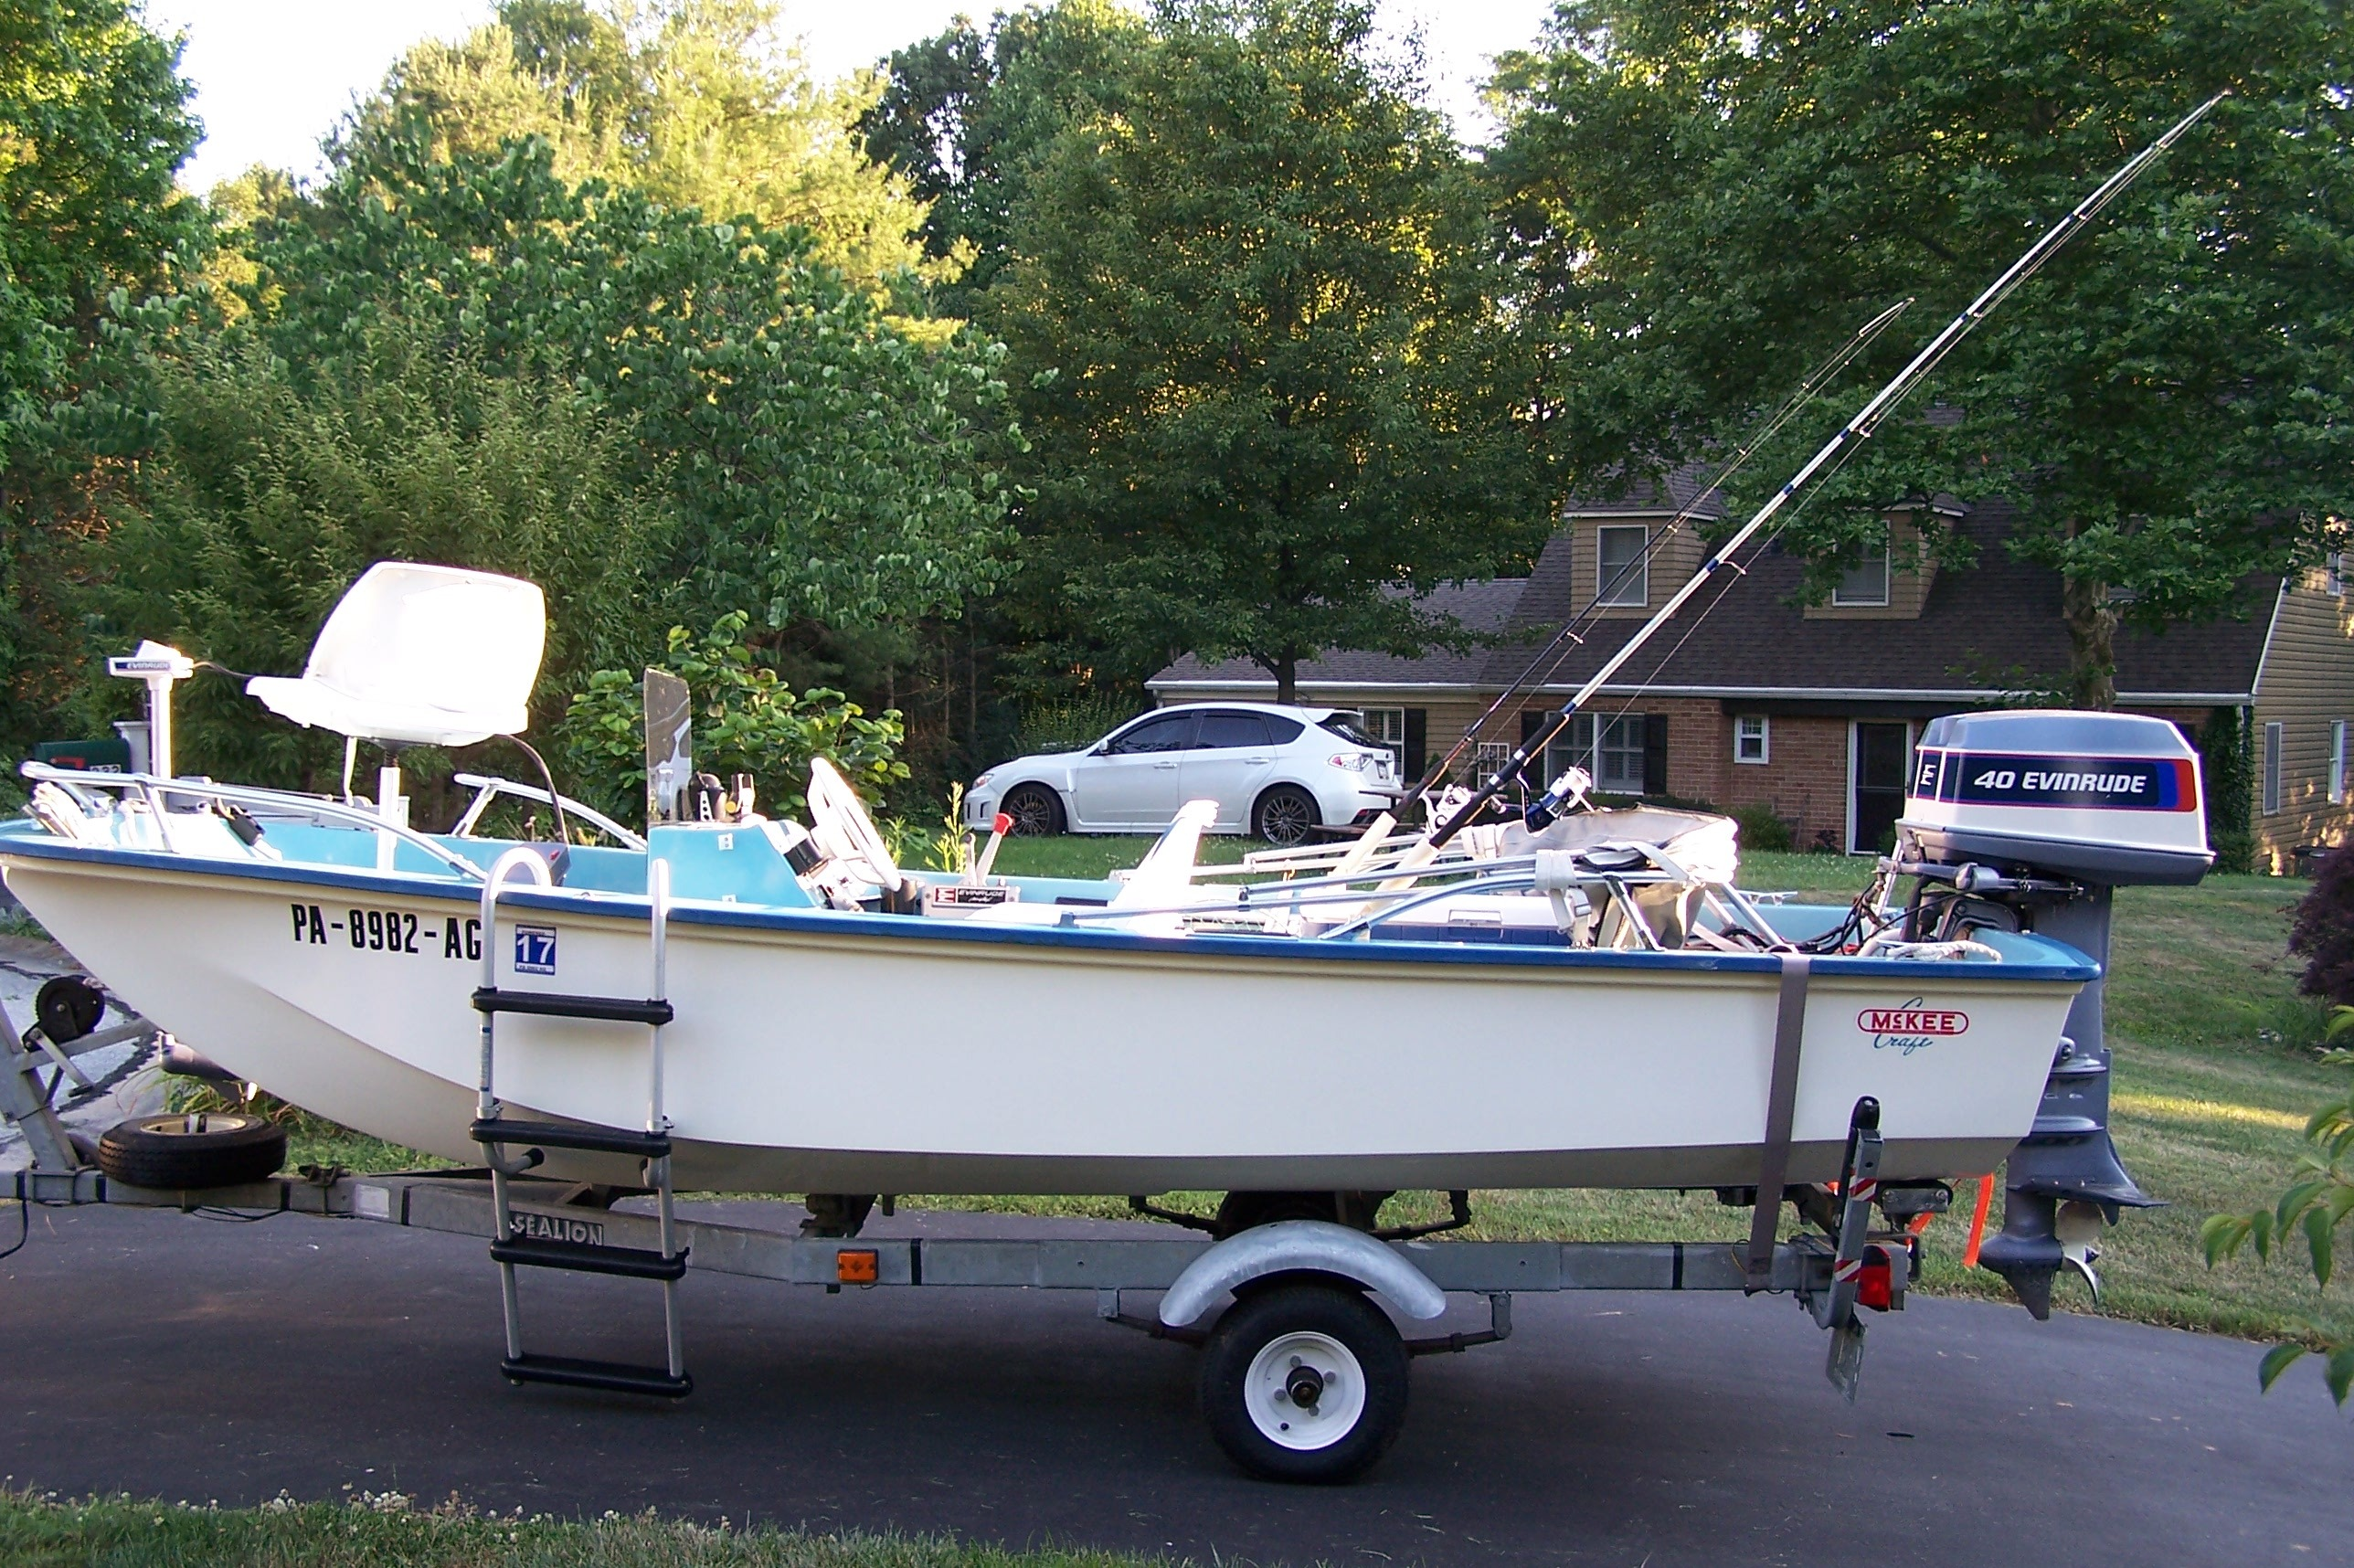 Mckee craft boats for sale for Skiff craft boats for sale